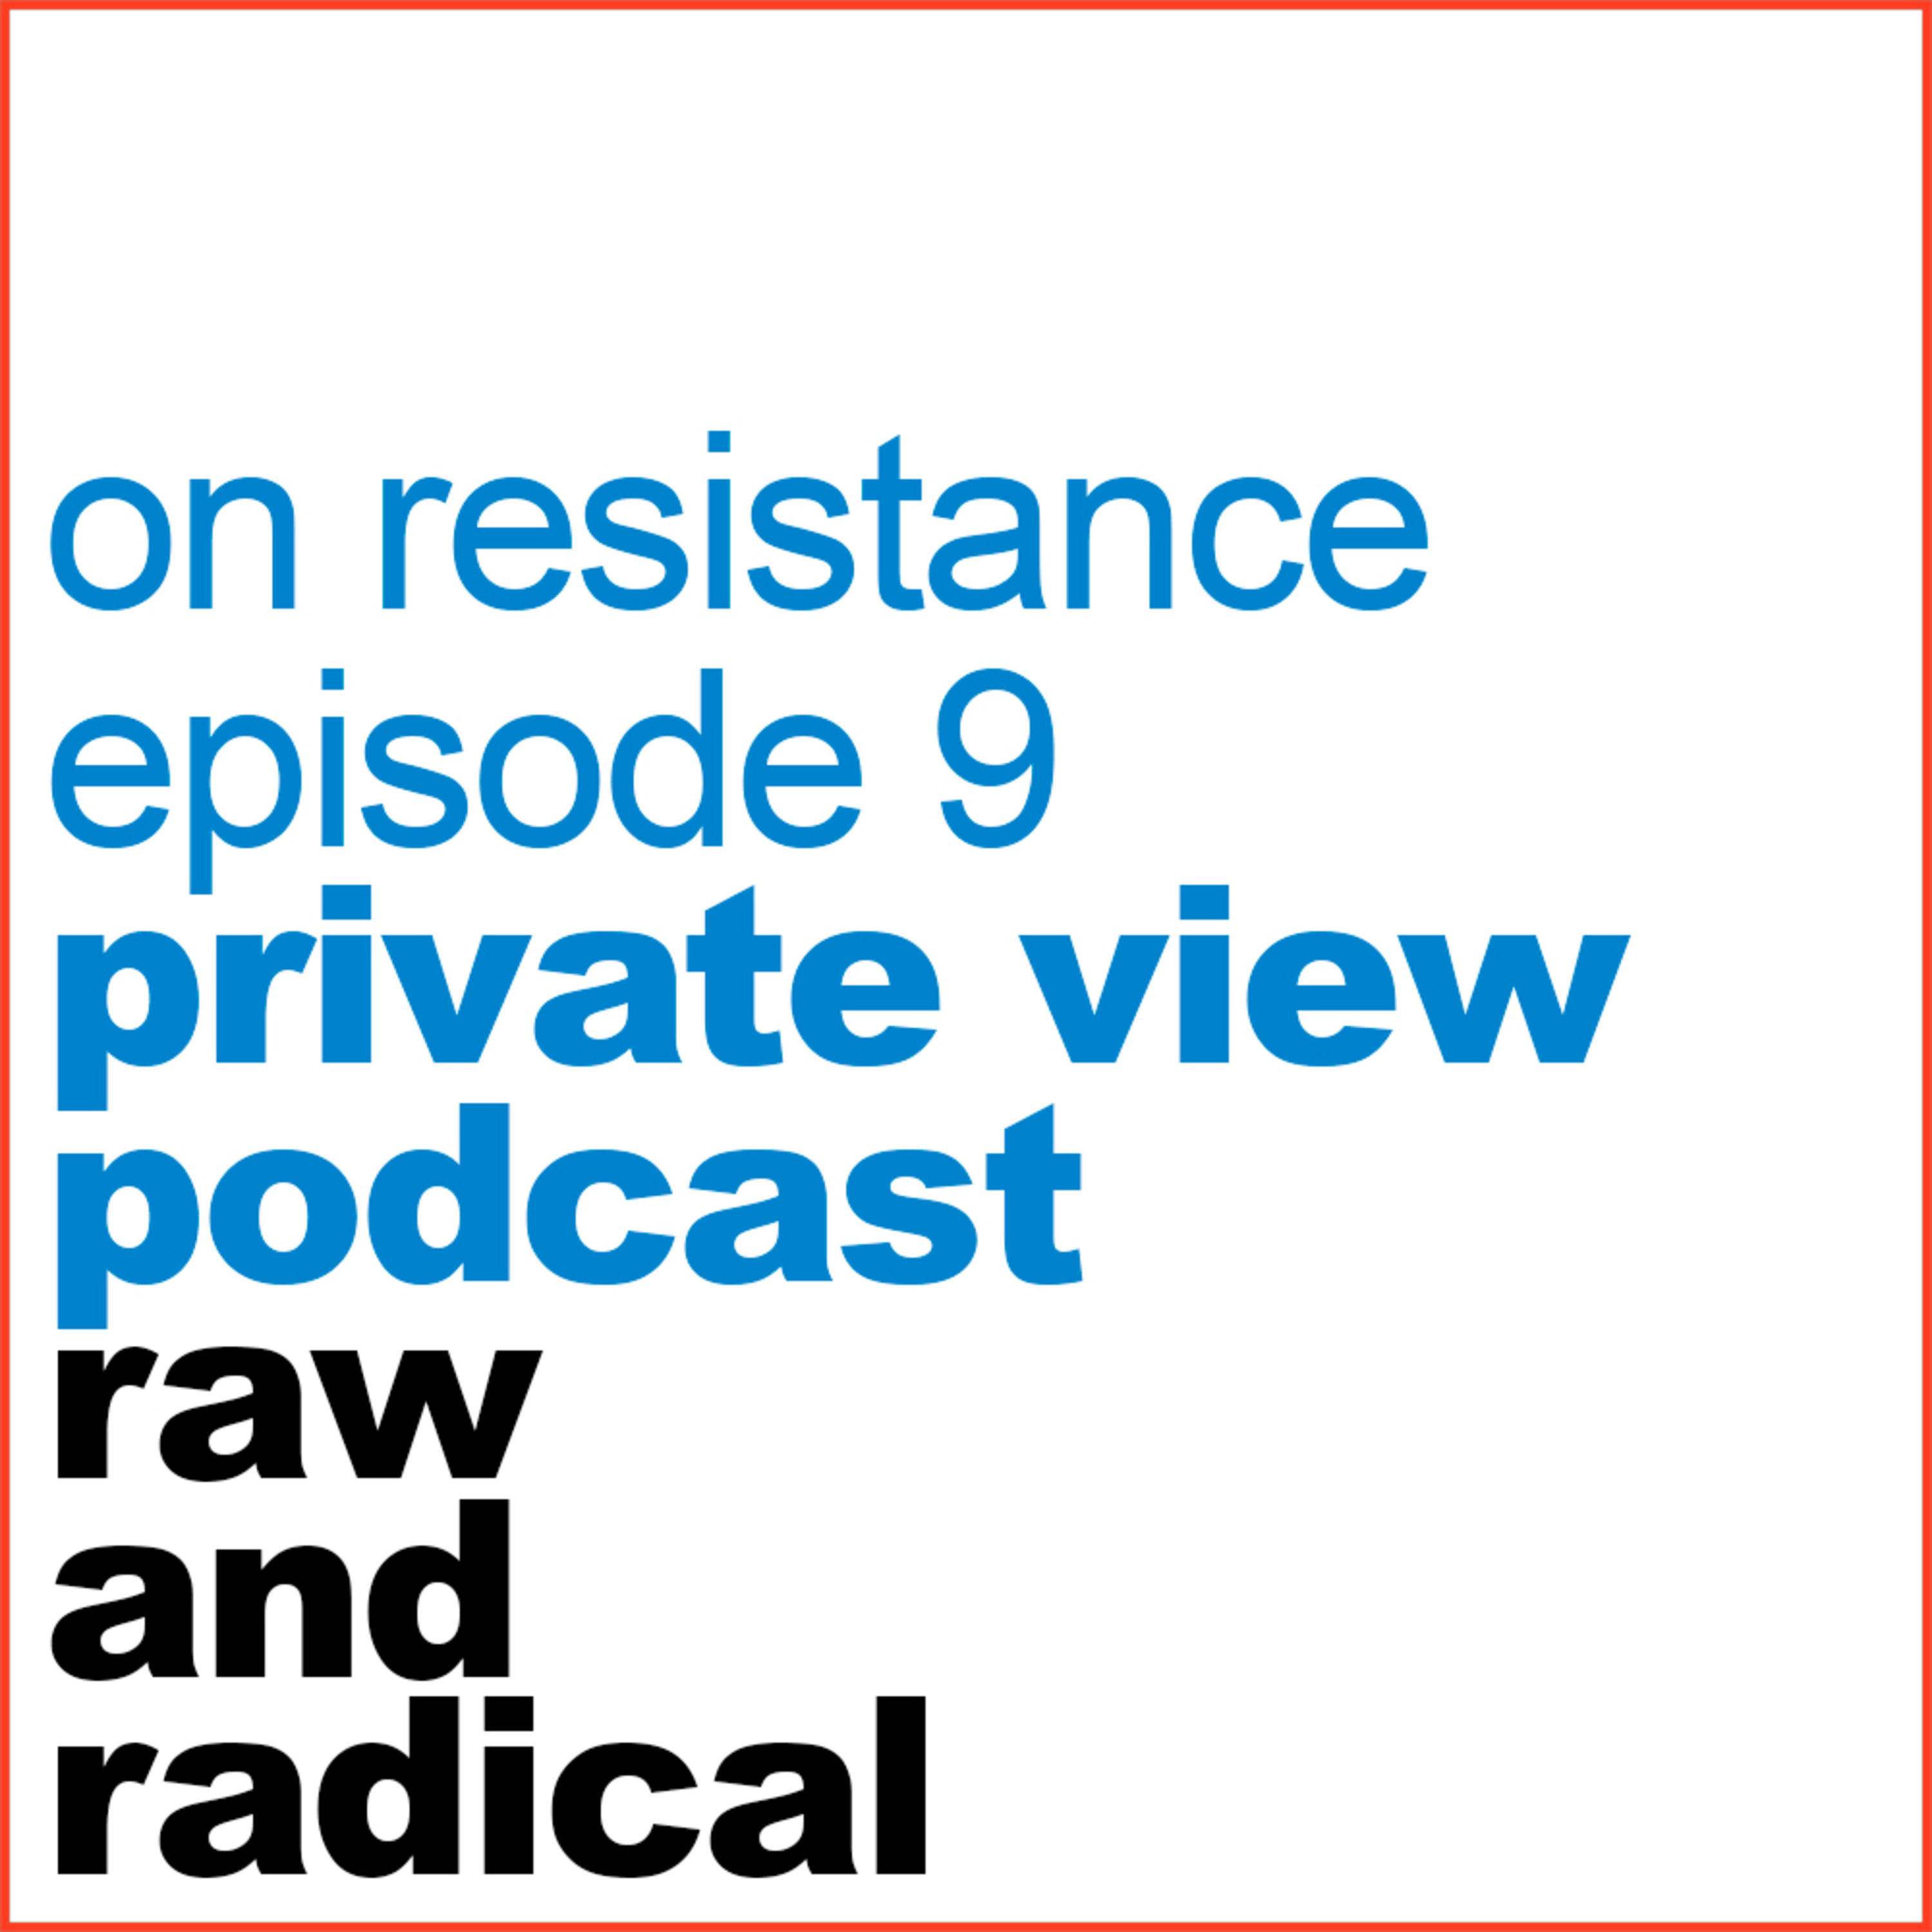 PRIVATE VIEW EPISODE 09 - RESISTANCE